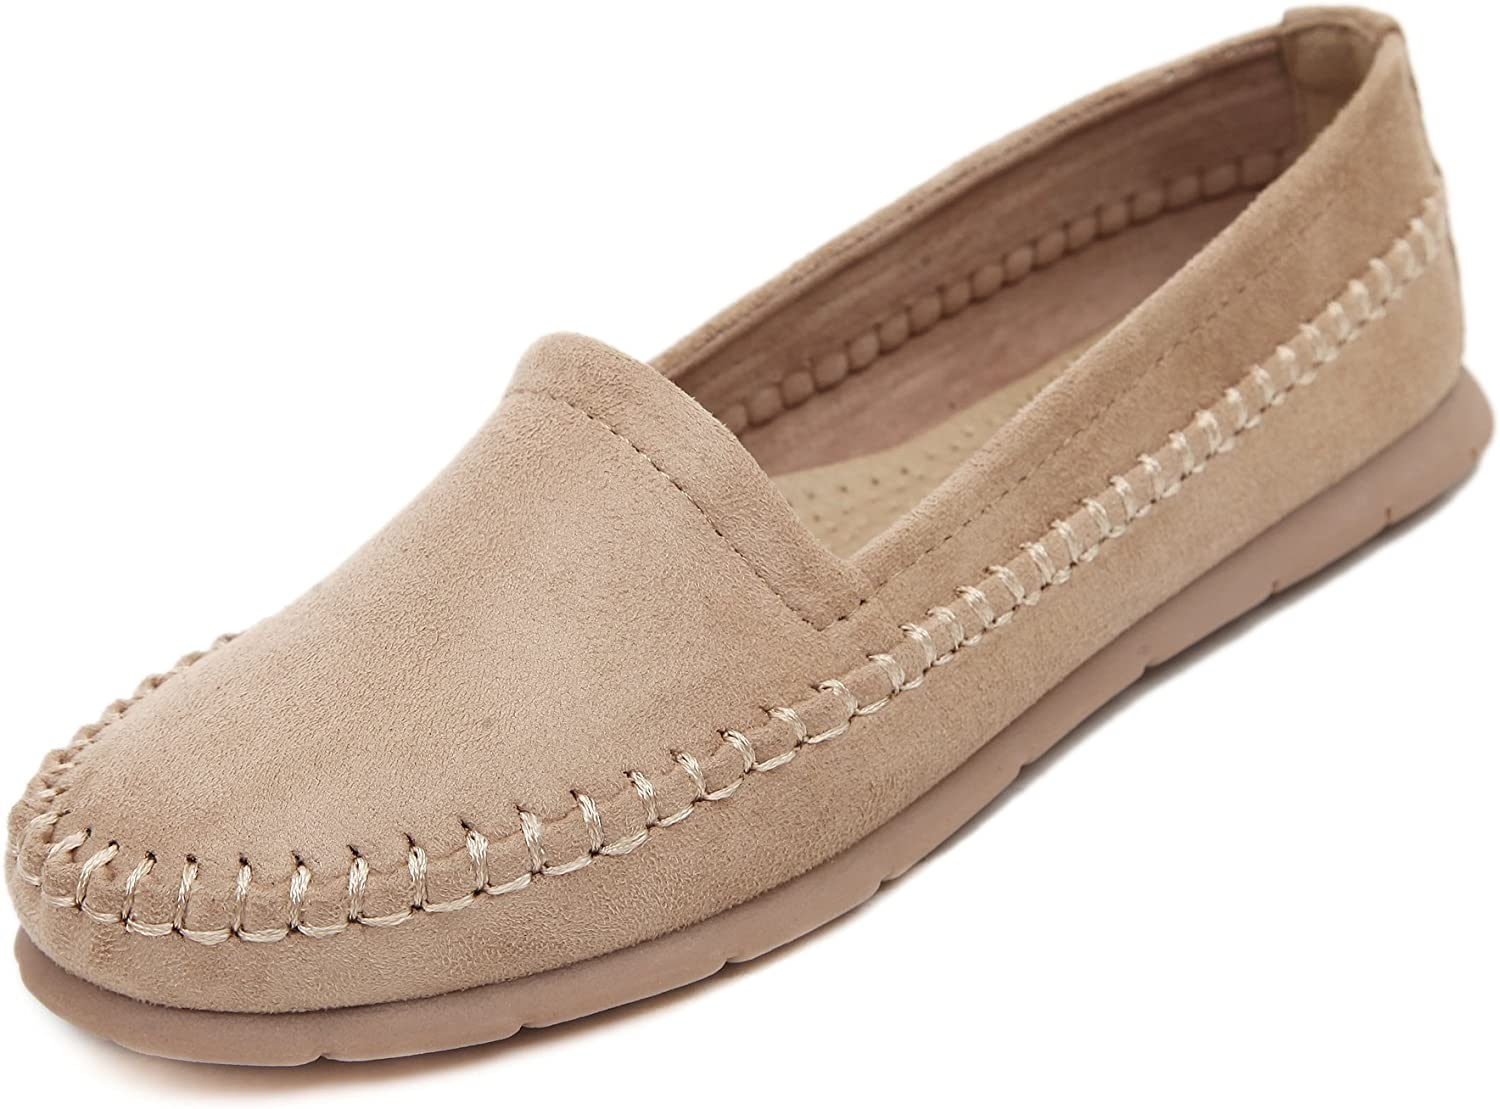 Adelina Women's Classical Solid Boat Loafer shoes Driving Moccasin Apricot 40 EU   8.5-9 US